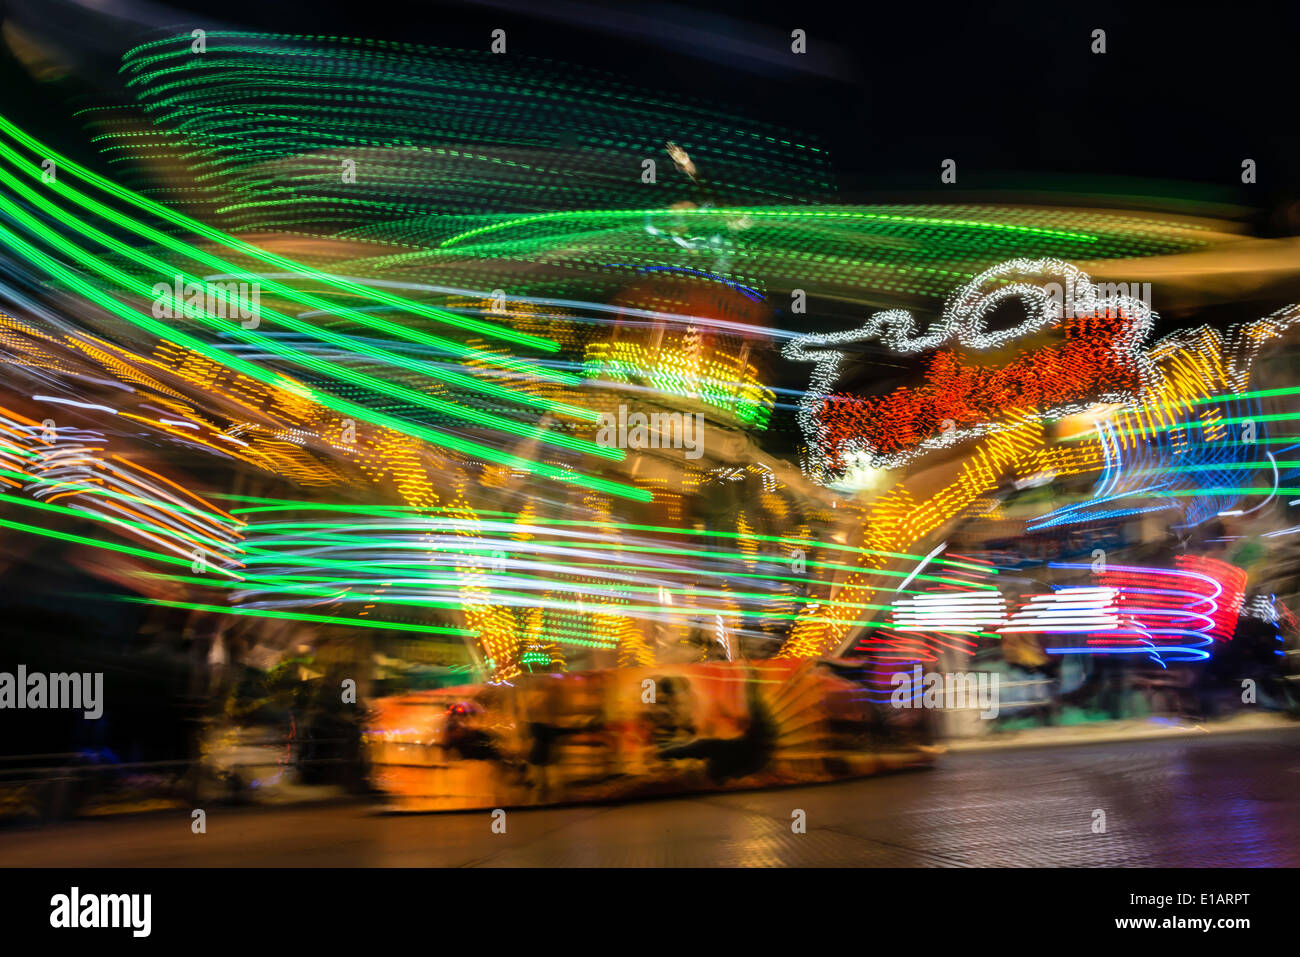 Light trails, ride at night, Munich Spring Festival, Theresienwiese, Munich, Bavaria, Germany - Stock Image